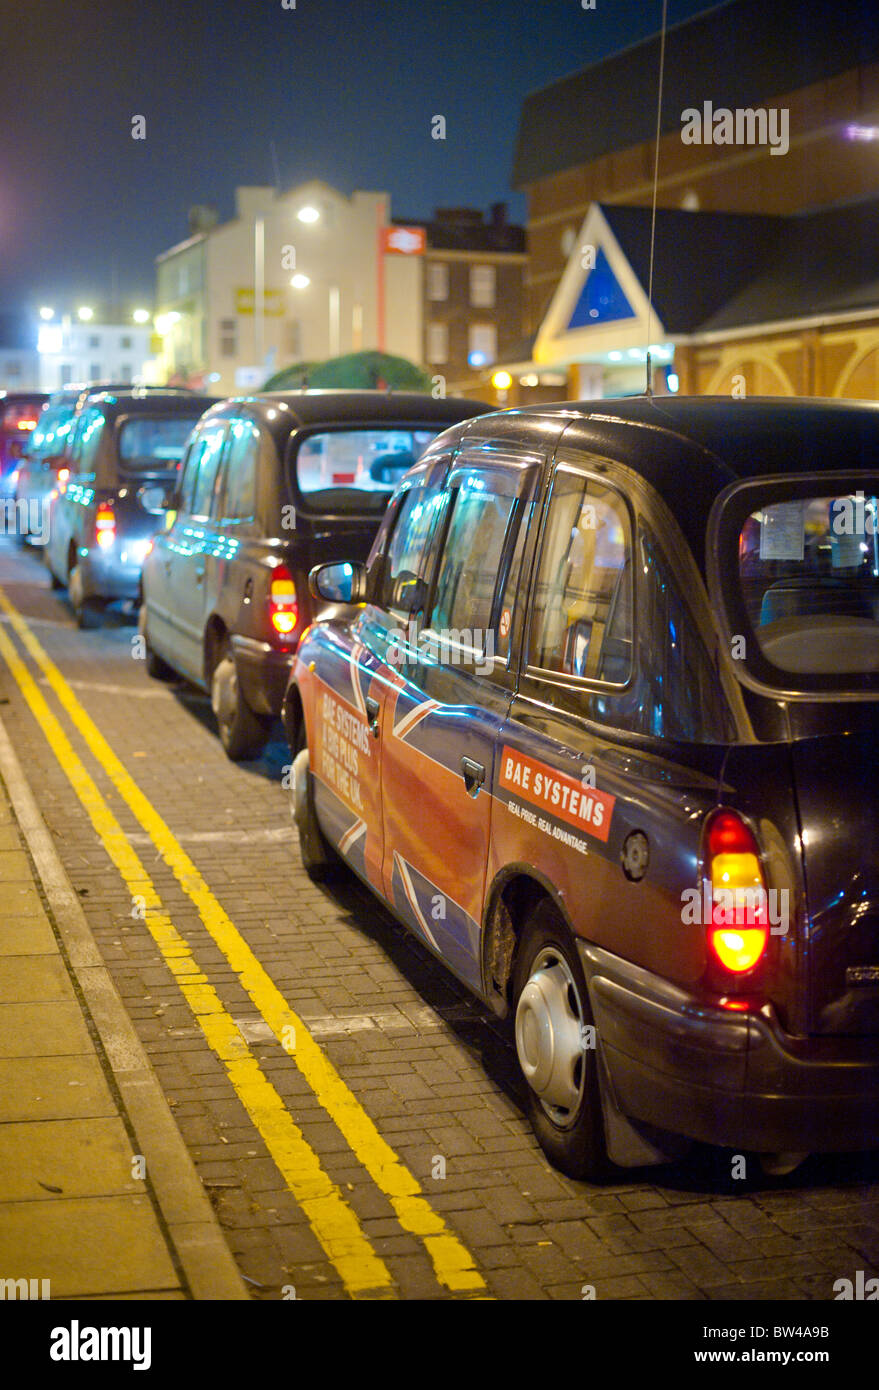 Taxi Cab with BAE Systems advertising in Preston, Lancashire - Stock Image